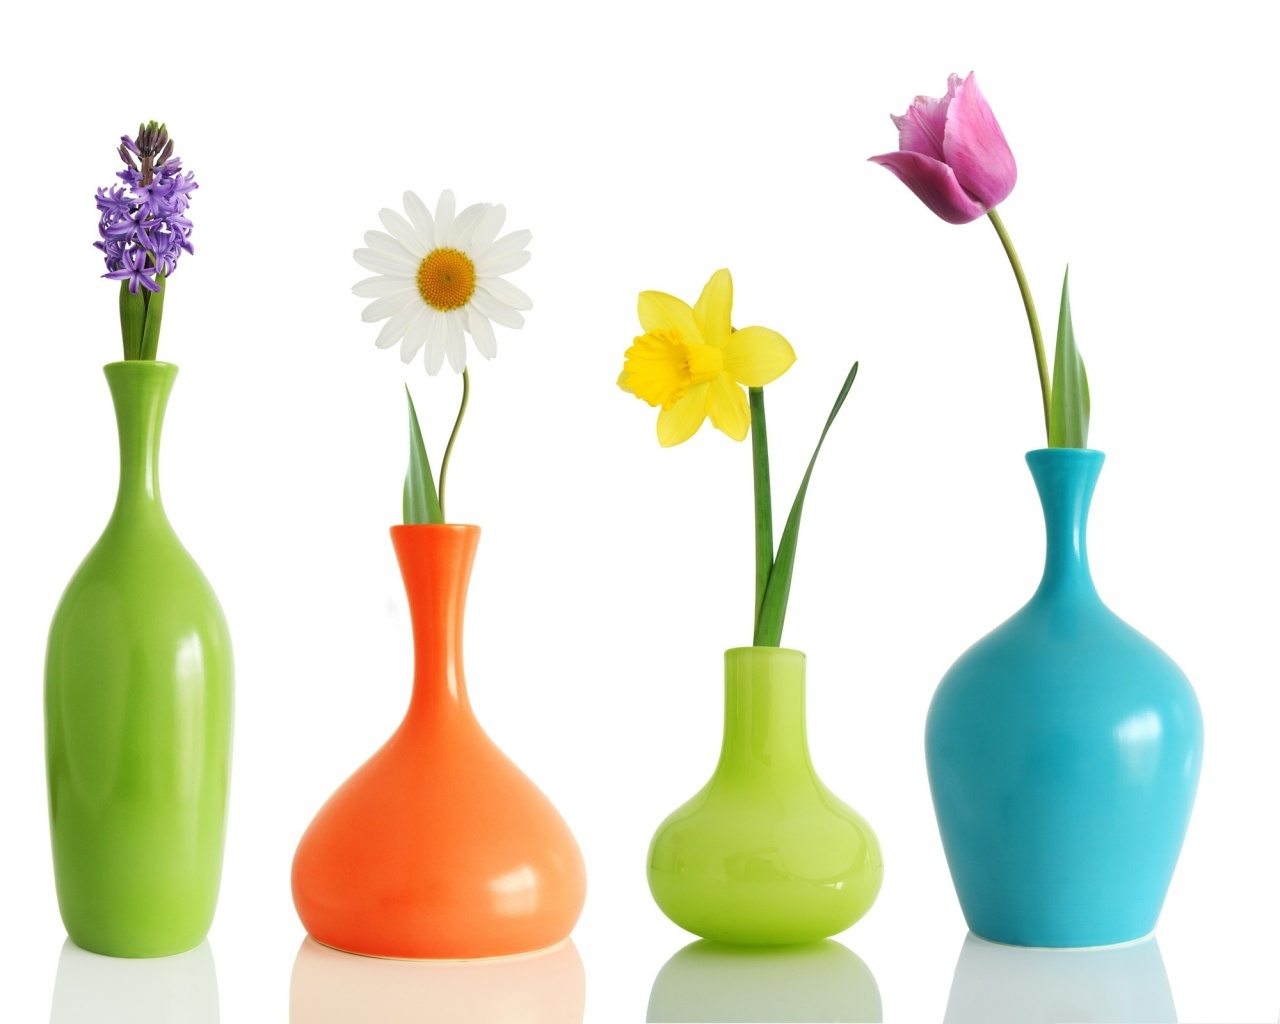 Colorul Flower Vases Colorful Flowers in Different Colored Vases Incredible